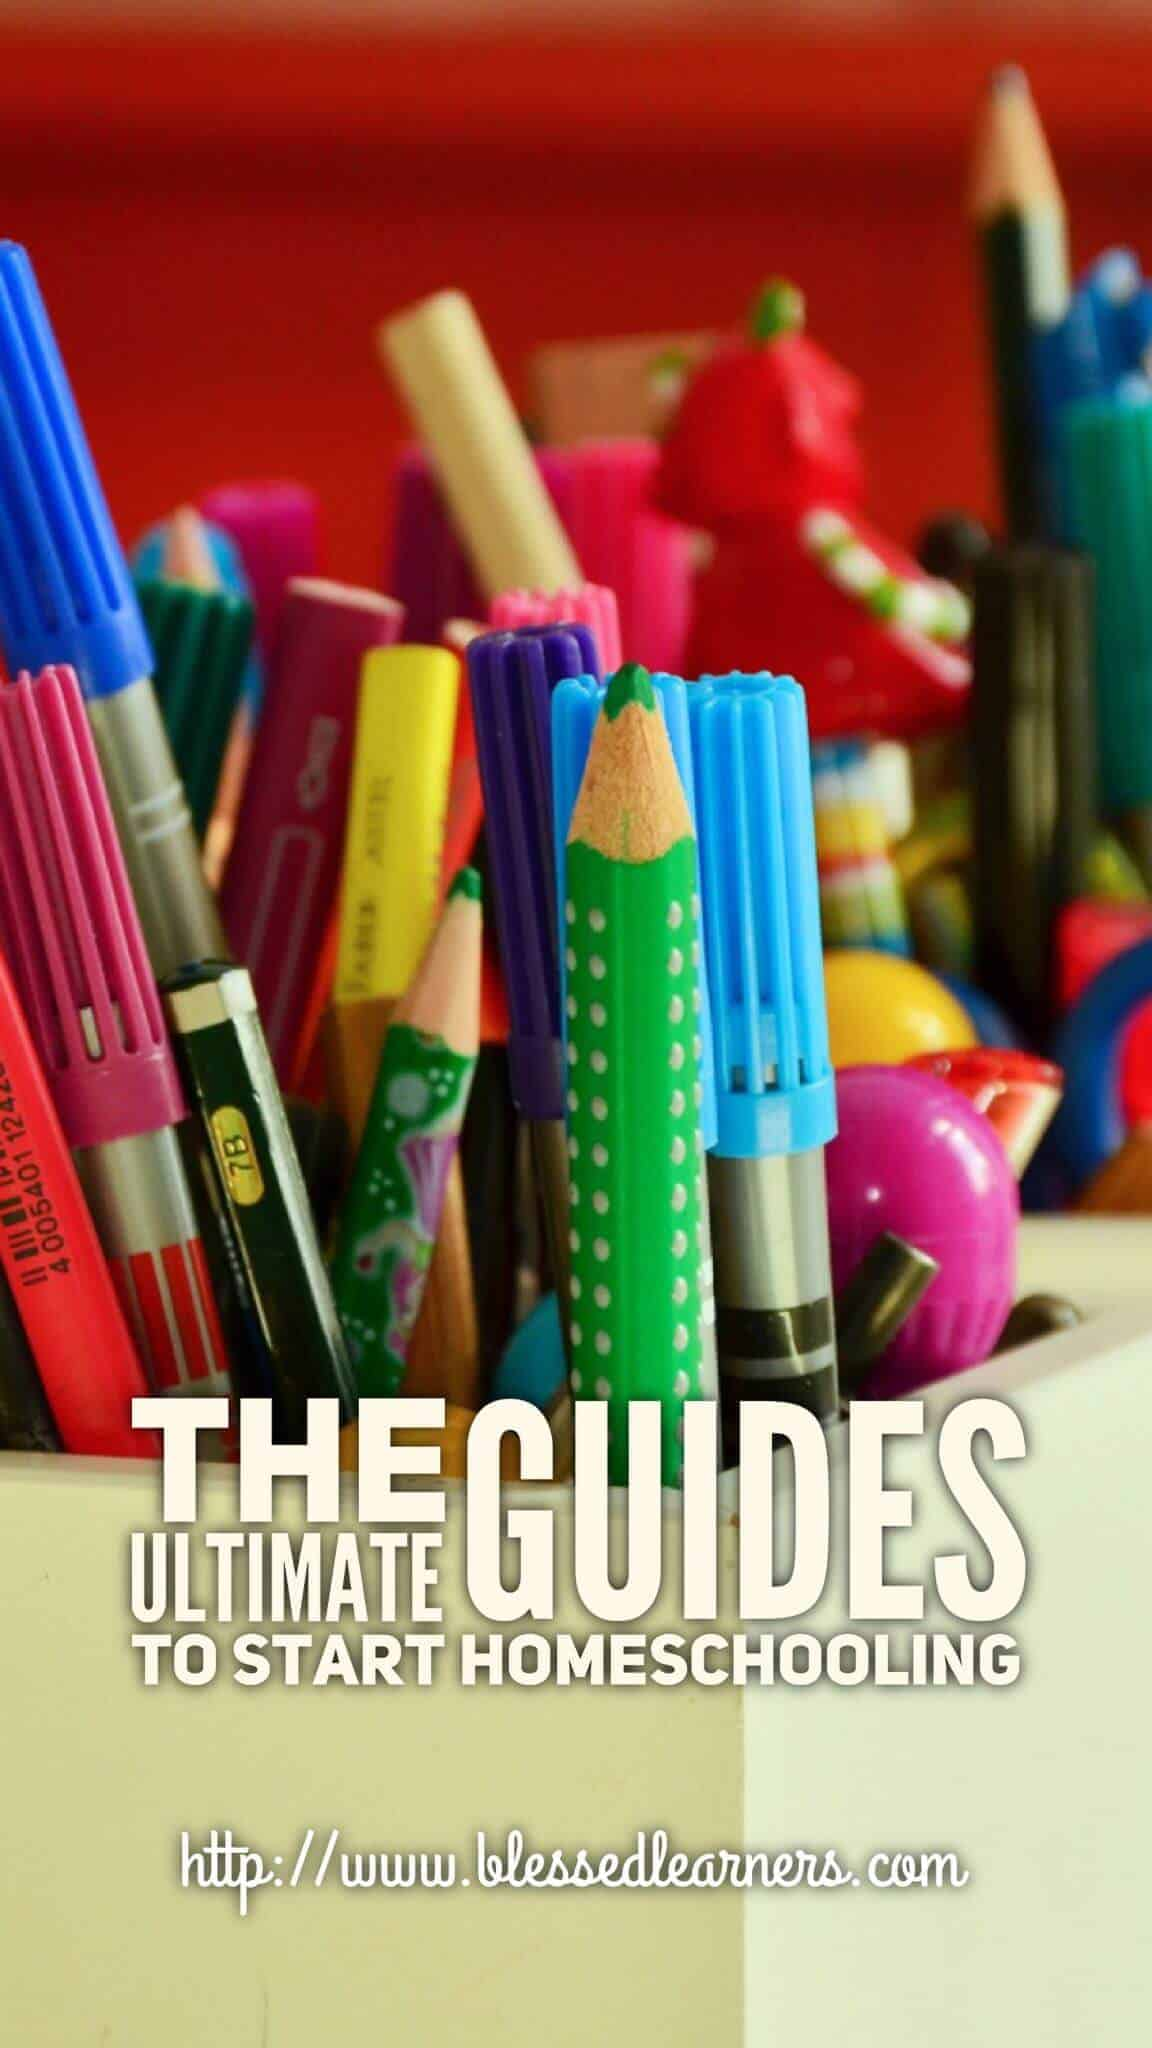 The Ultimate Guides to Start Homeschooling